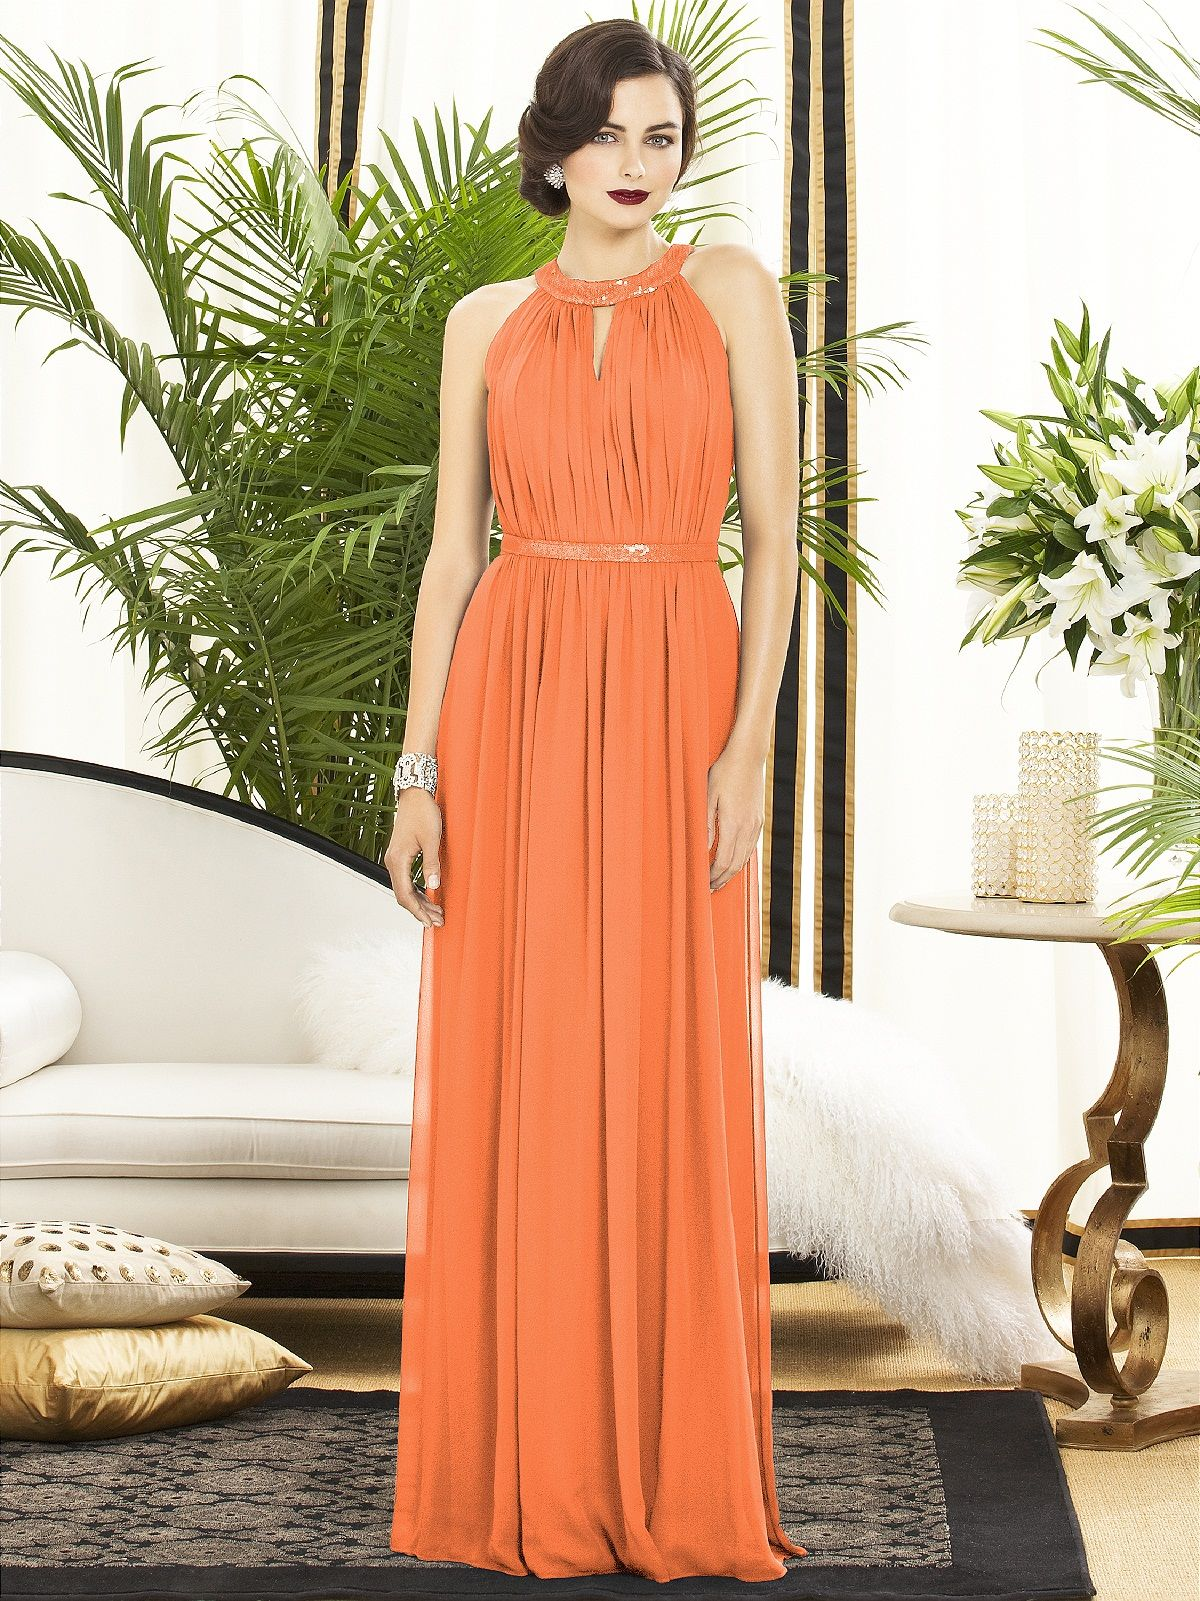 85e2be8e0e Very glamorous and would be very flattering on fuller figures Dessy  Bridesmaid Dresses